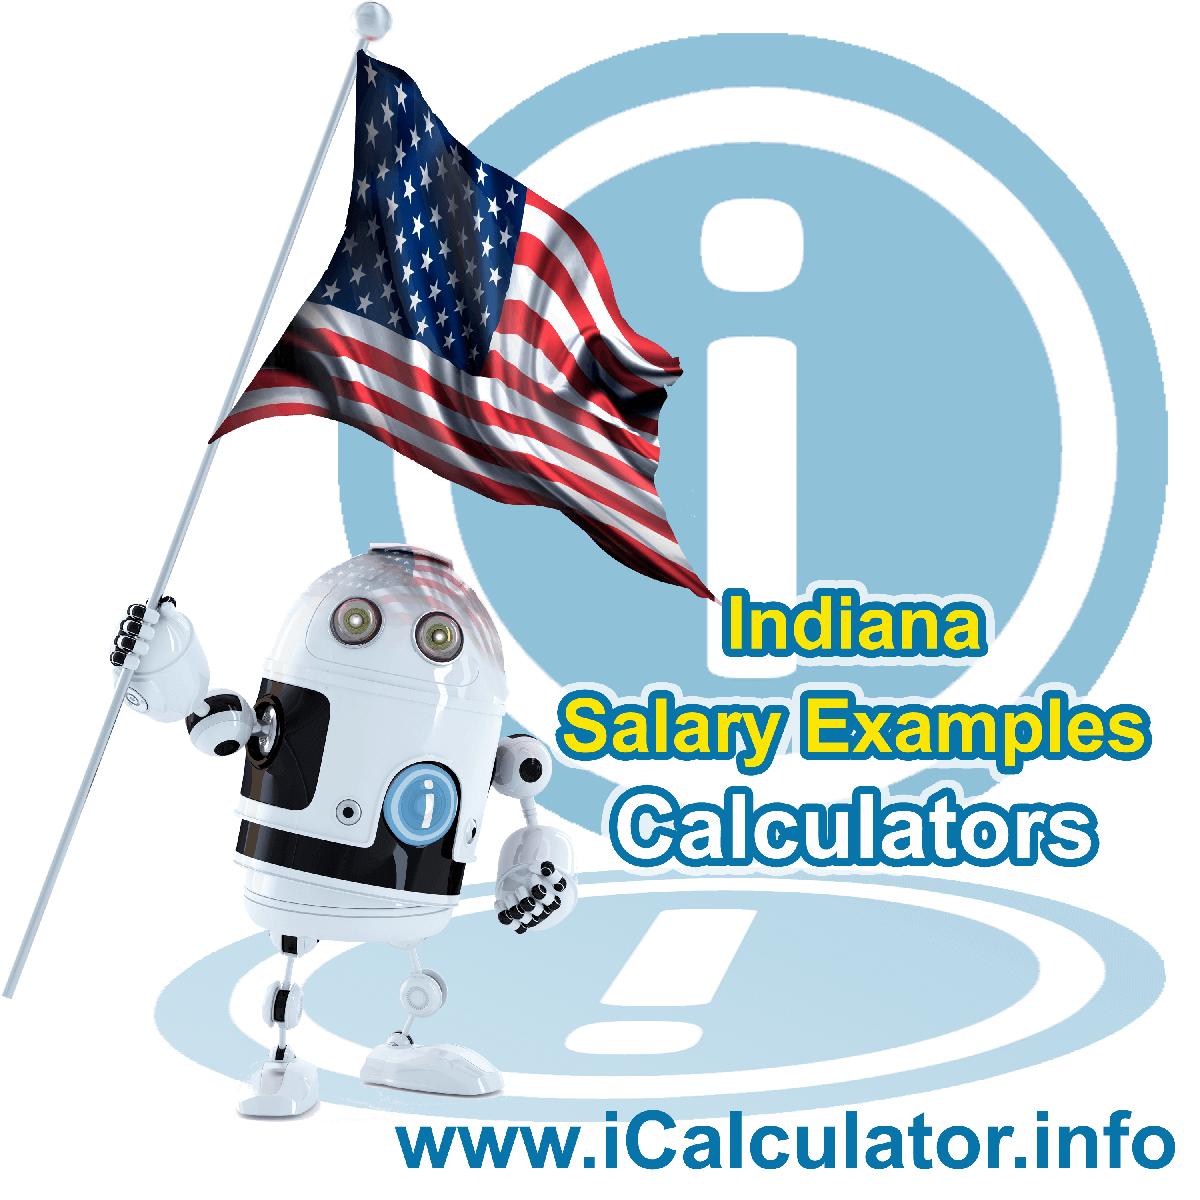 Indiana Salary Example for $205,000.00 in 2020 | iCalculator | $205,000.00 salary example for employee and employer paying Indiana State tincome taxes. Detailed salary after tax calculation including Indiana State Tax, Federal State Tax, Medicare Deductions, Social Security, Capital Gains and other income tax and salary deductions complete with supporting Indiana state tax tables